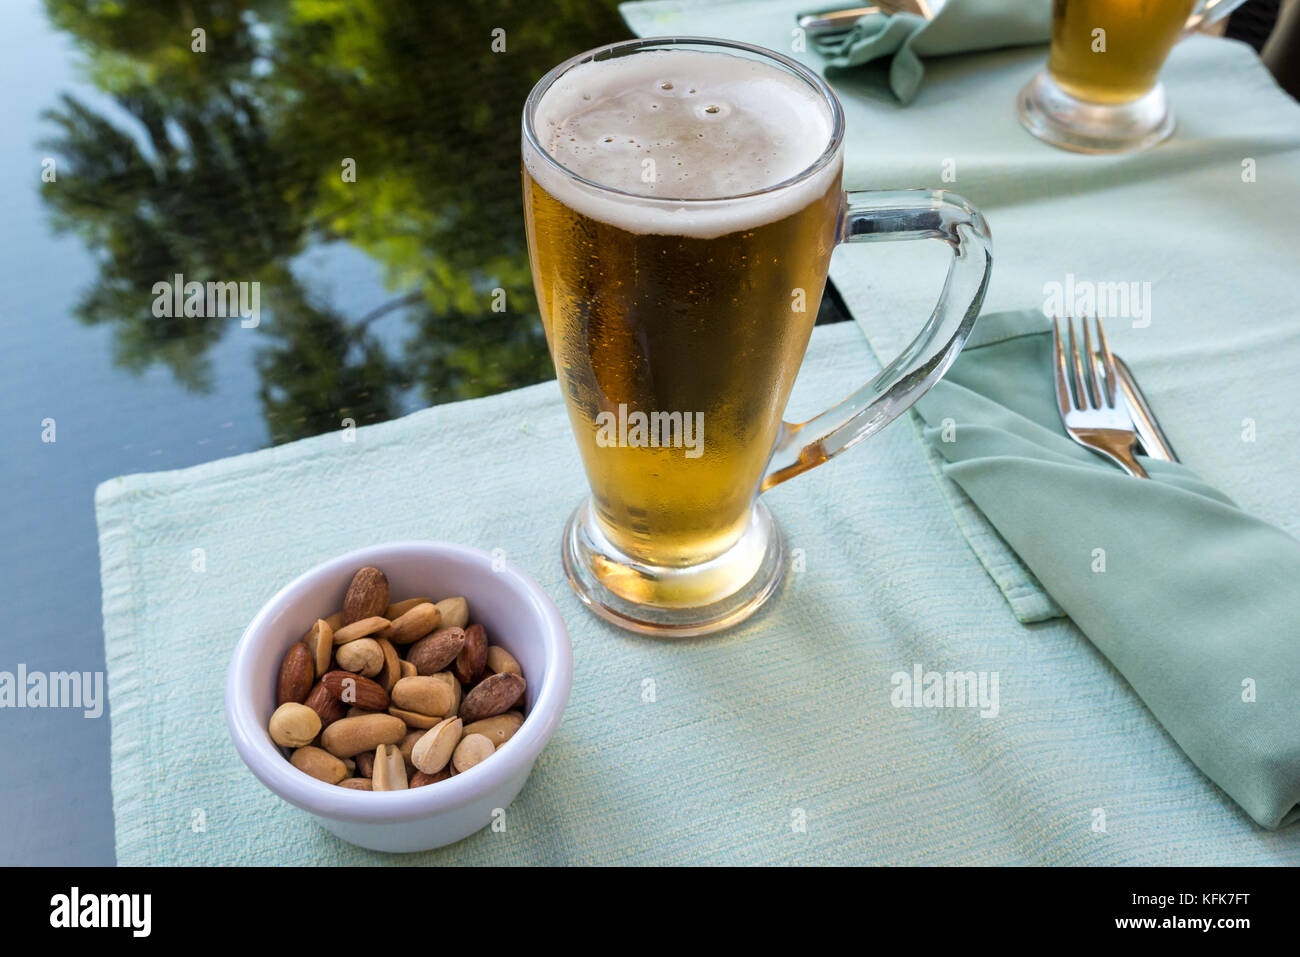 Close up of cold beer glass mugs and mixed nuts in small dish on glass lunch table with cutlery setting and blurred - Stock Image